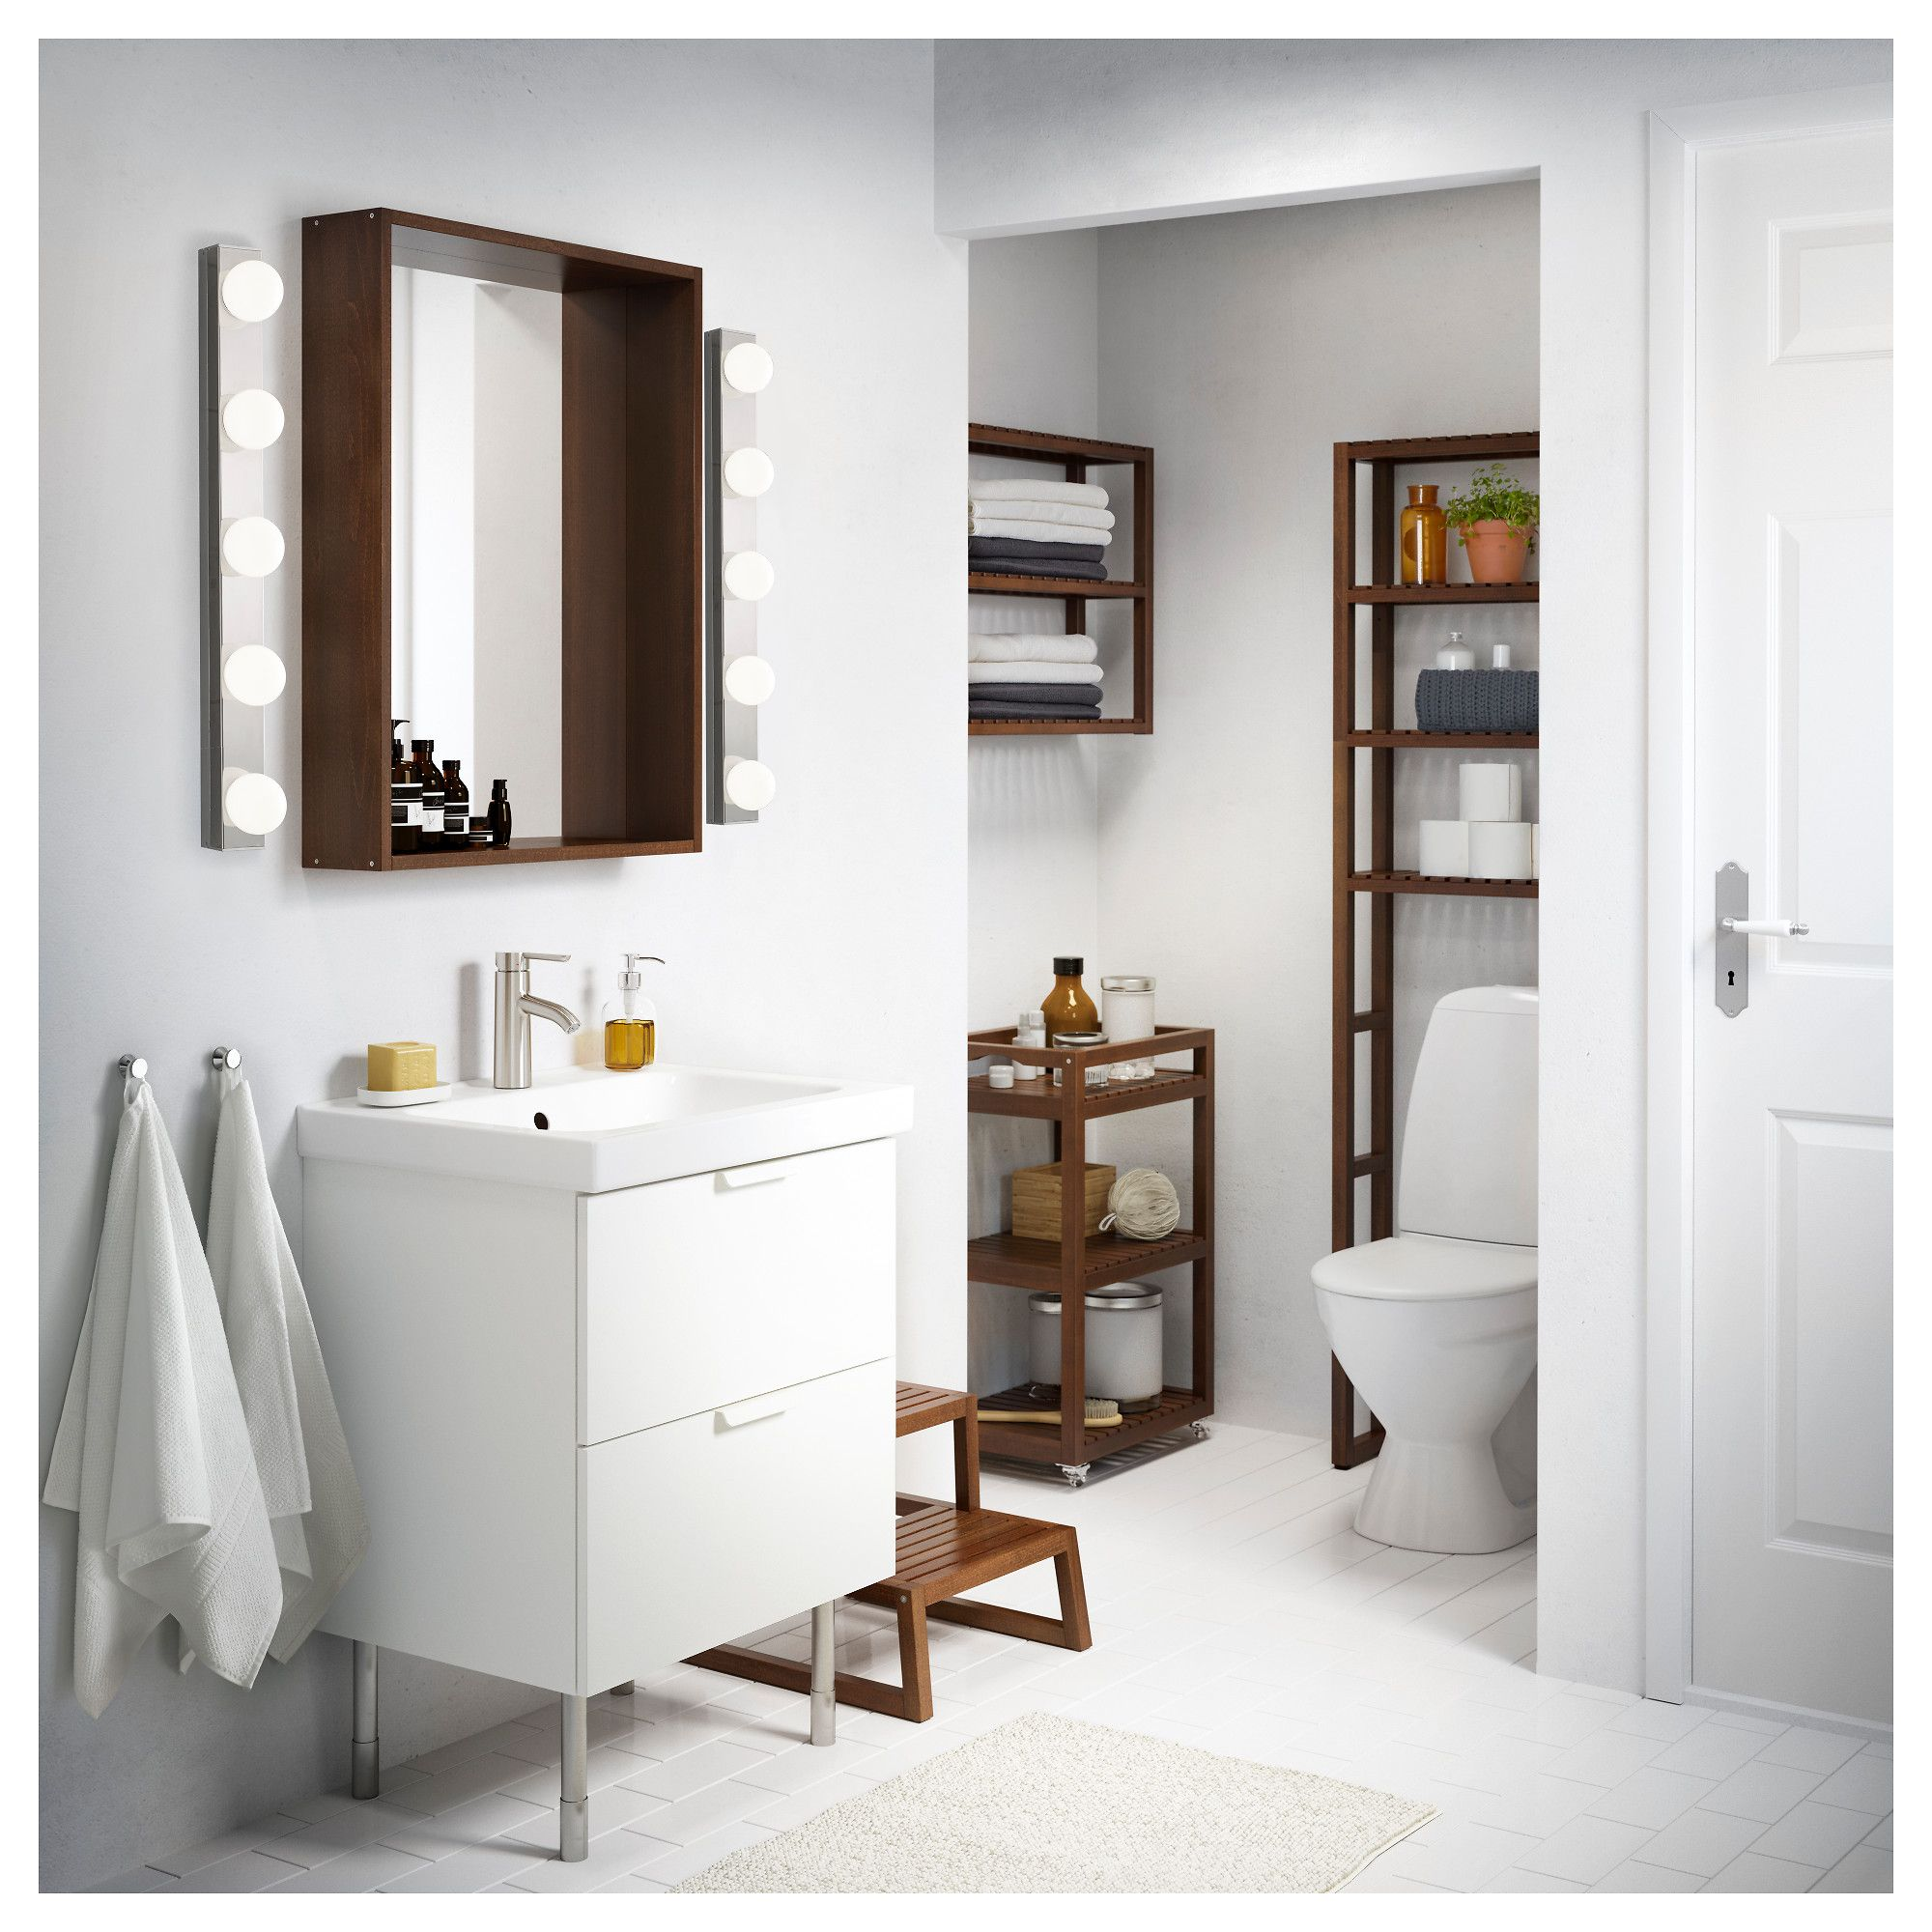 Ikea godmorgon odensvik sink cabinet with drawers white in